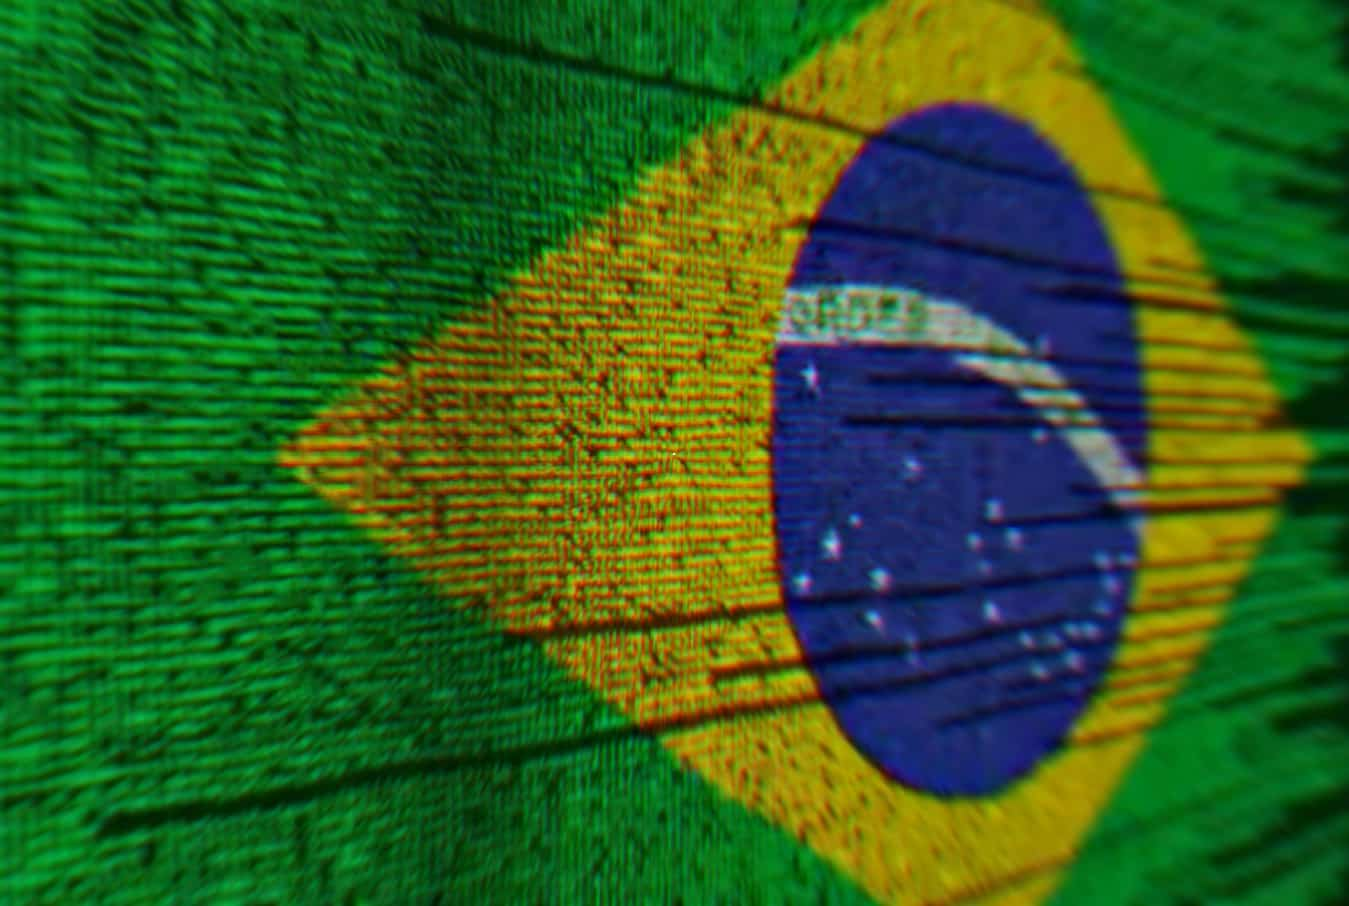 Brazil's cosmetic giant Natura leaked 192 million records with payment data - RapidAPI